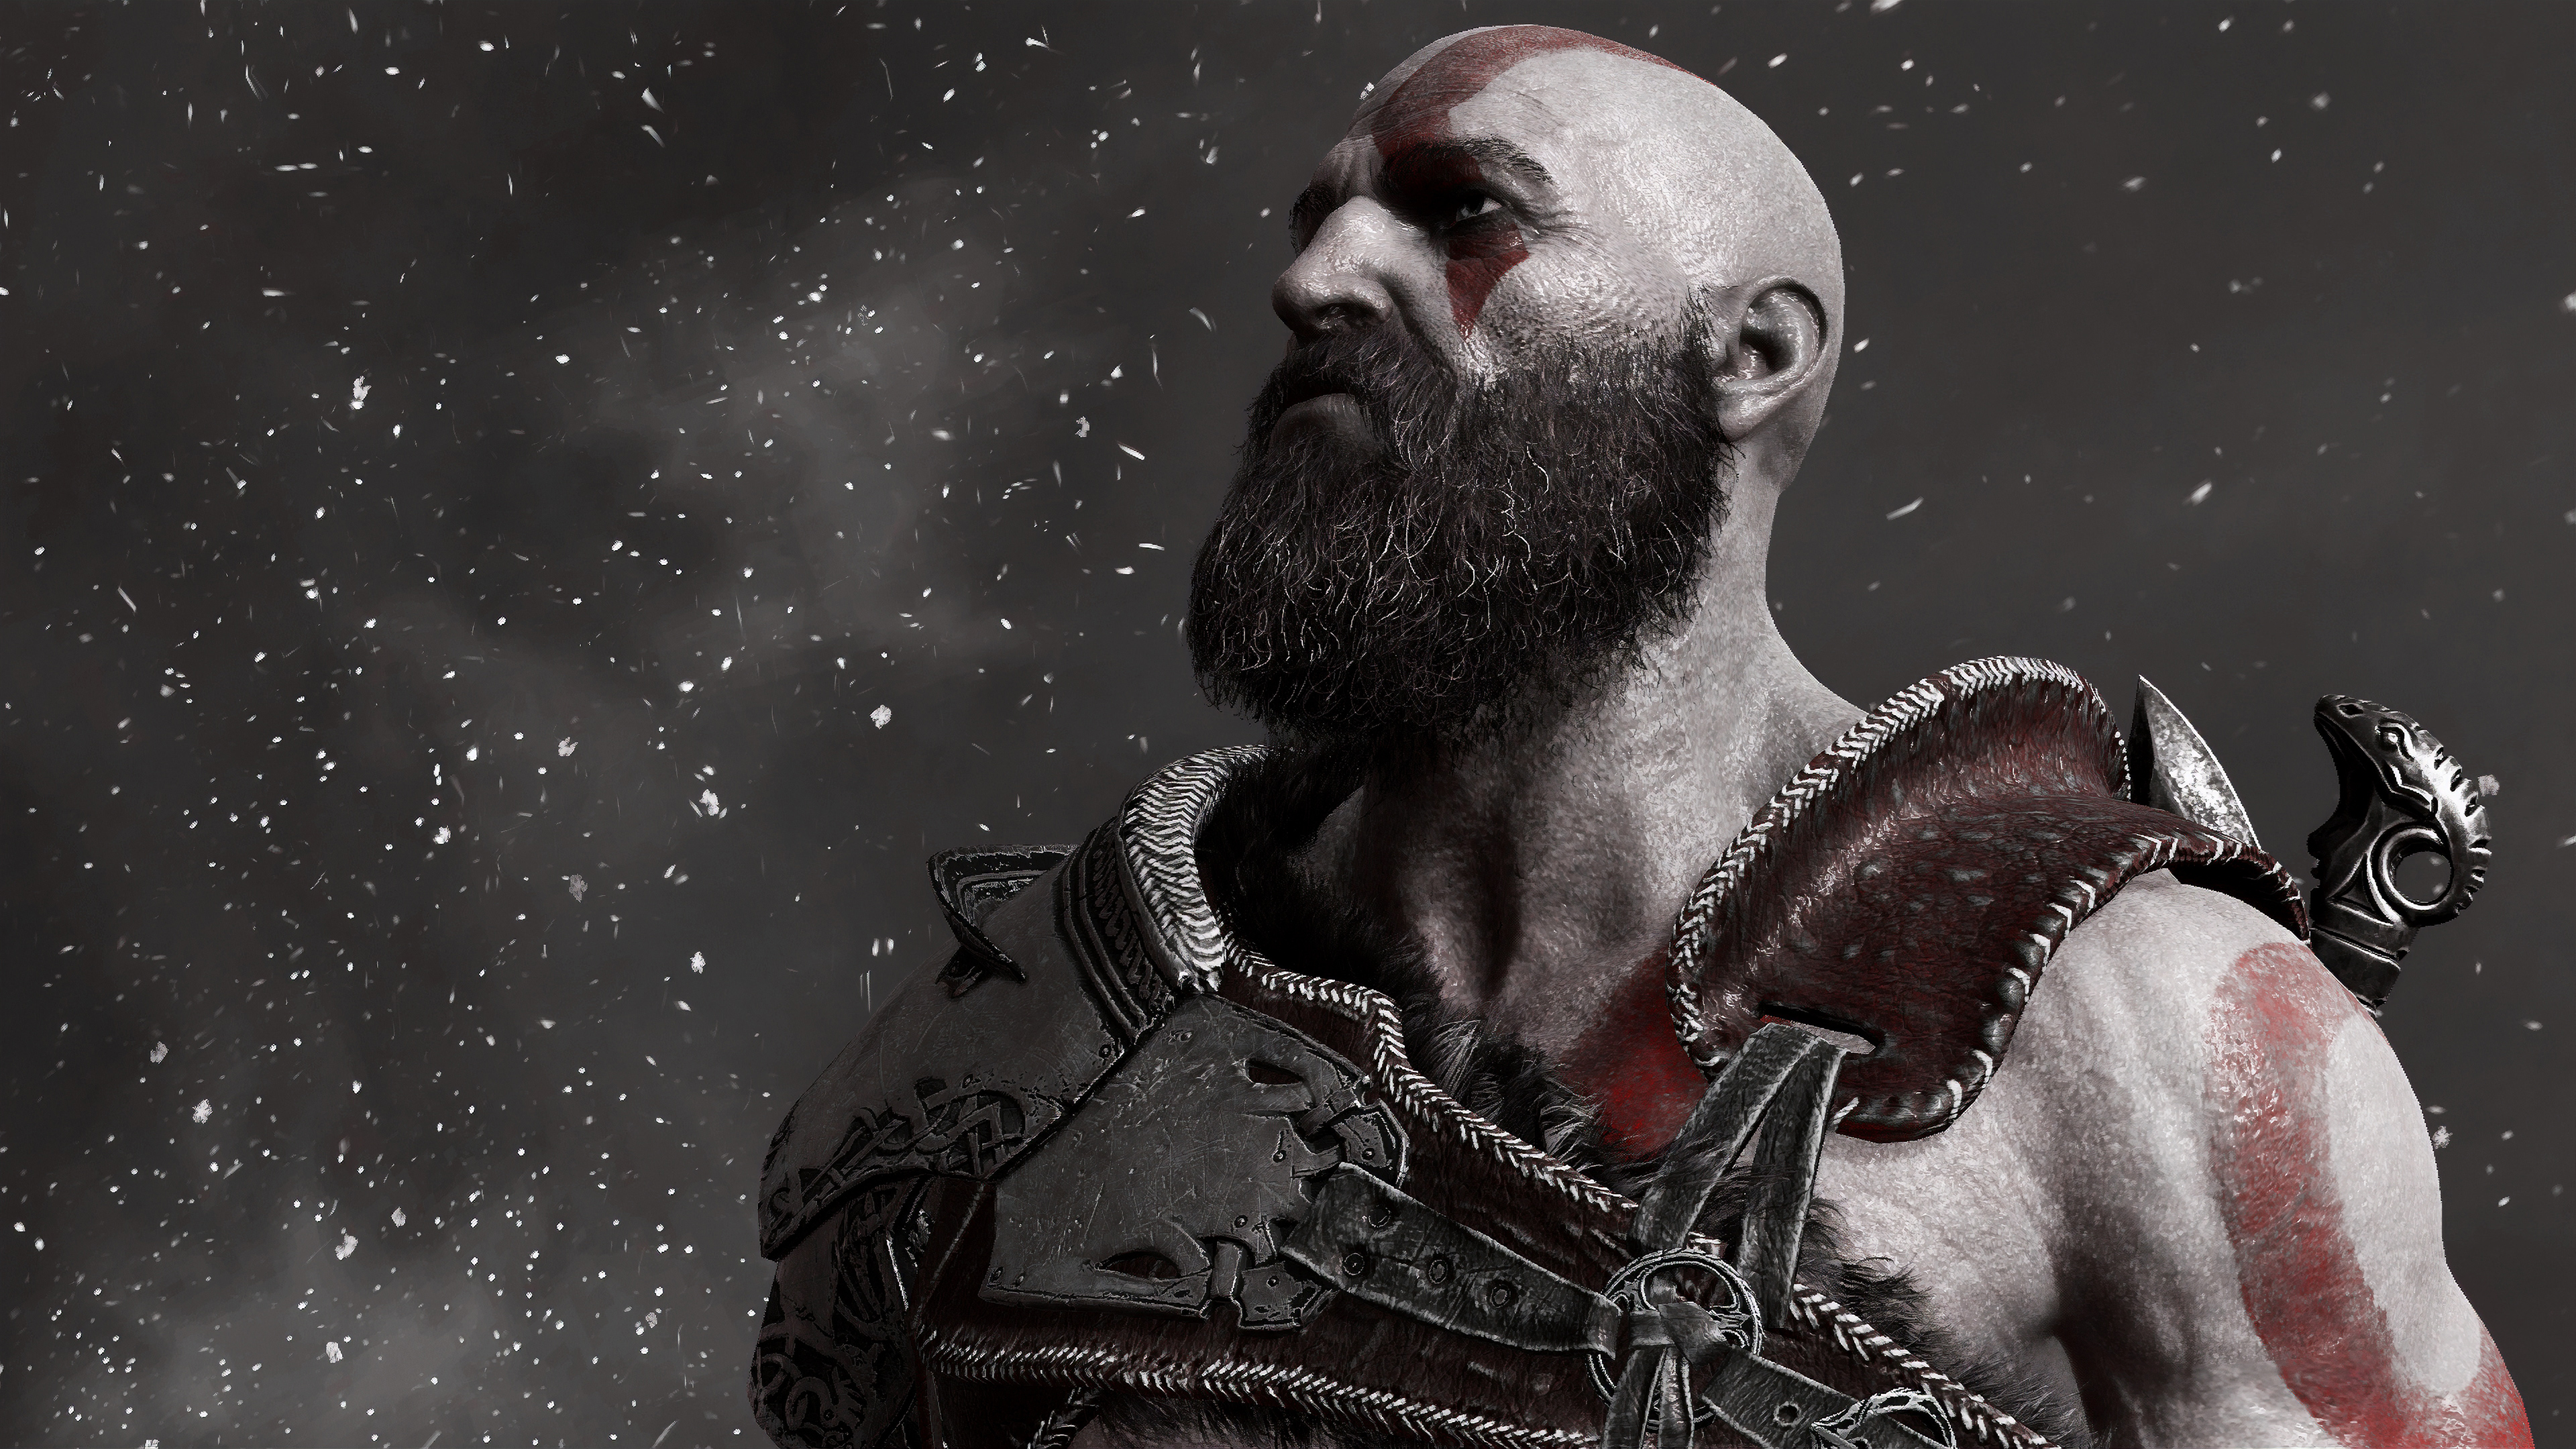 god of war 4 4k 1560534703 - God Of War 4 4k - ps games wallpapers, kratos wallpapers, hd-wallpapers, god of war wallpapers, god of war 4 wallpapers, games wallpapers, 4k-wallpapers, 2019 games wallpapers